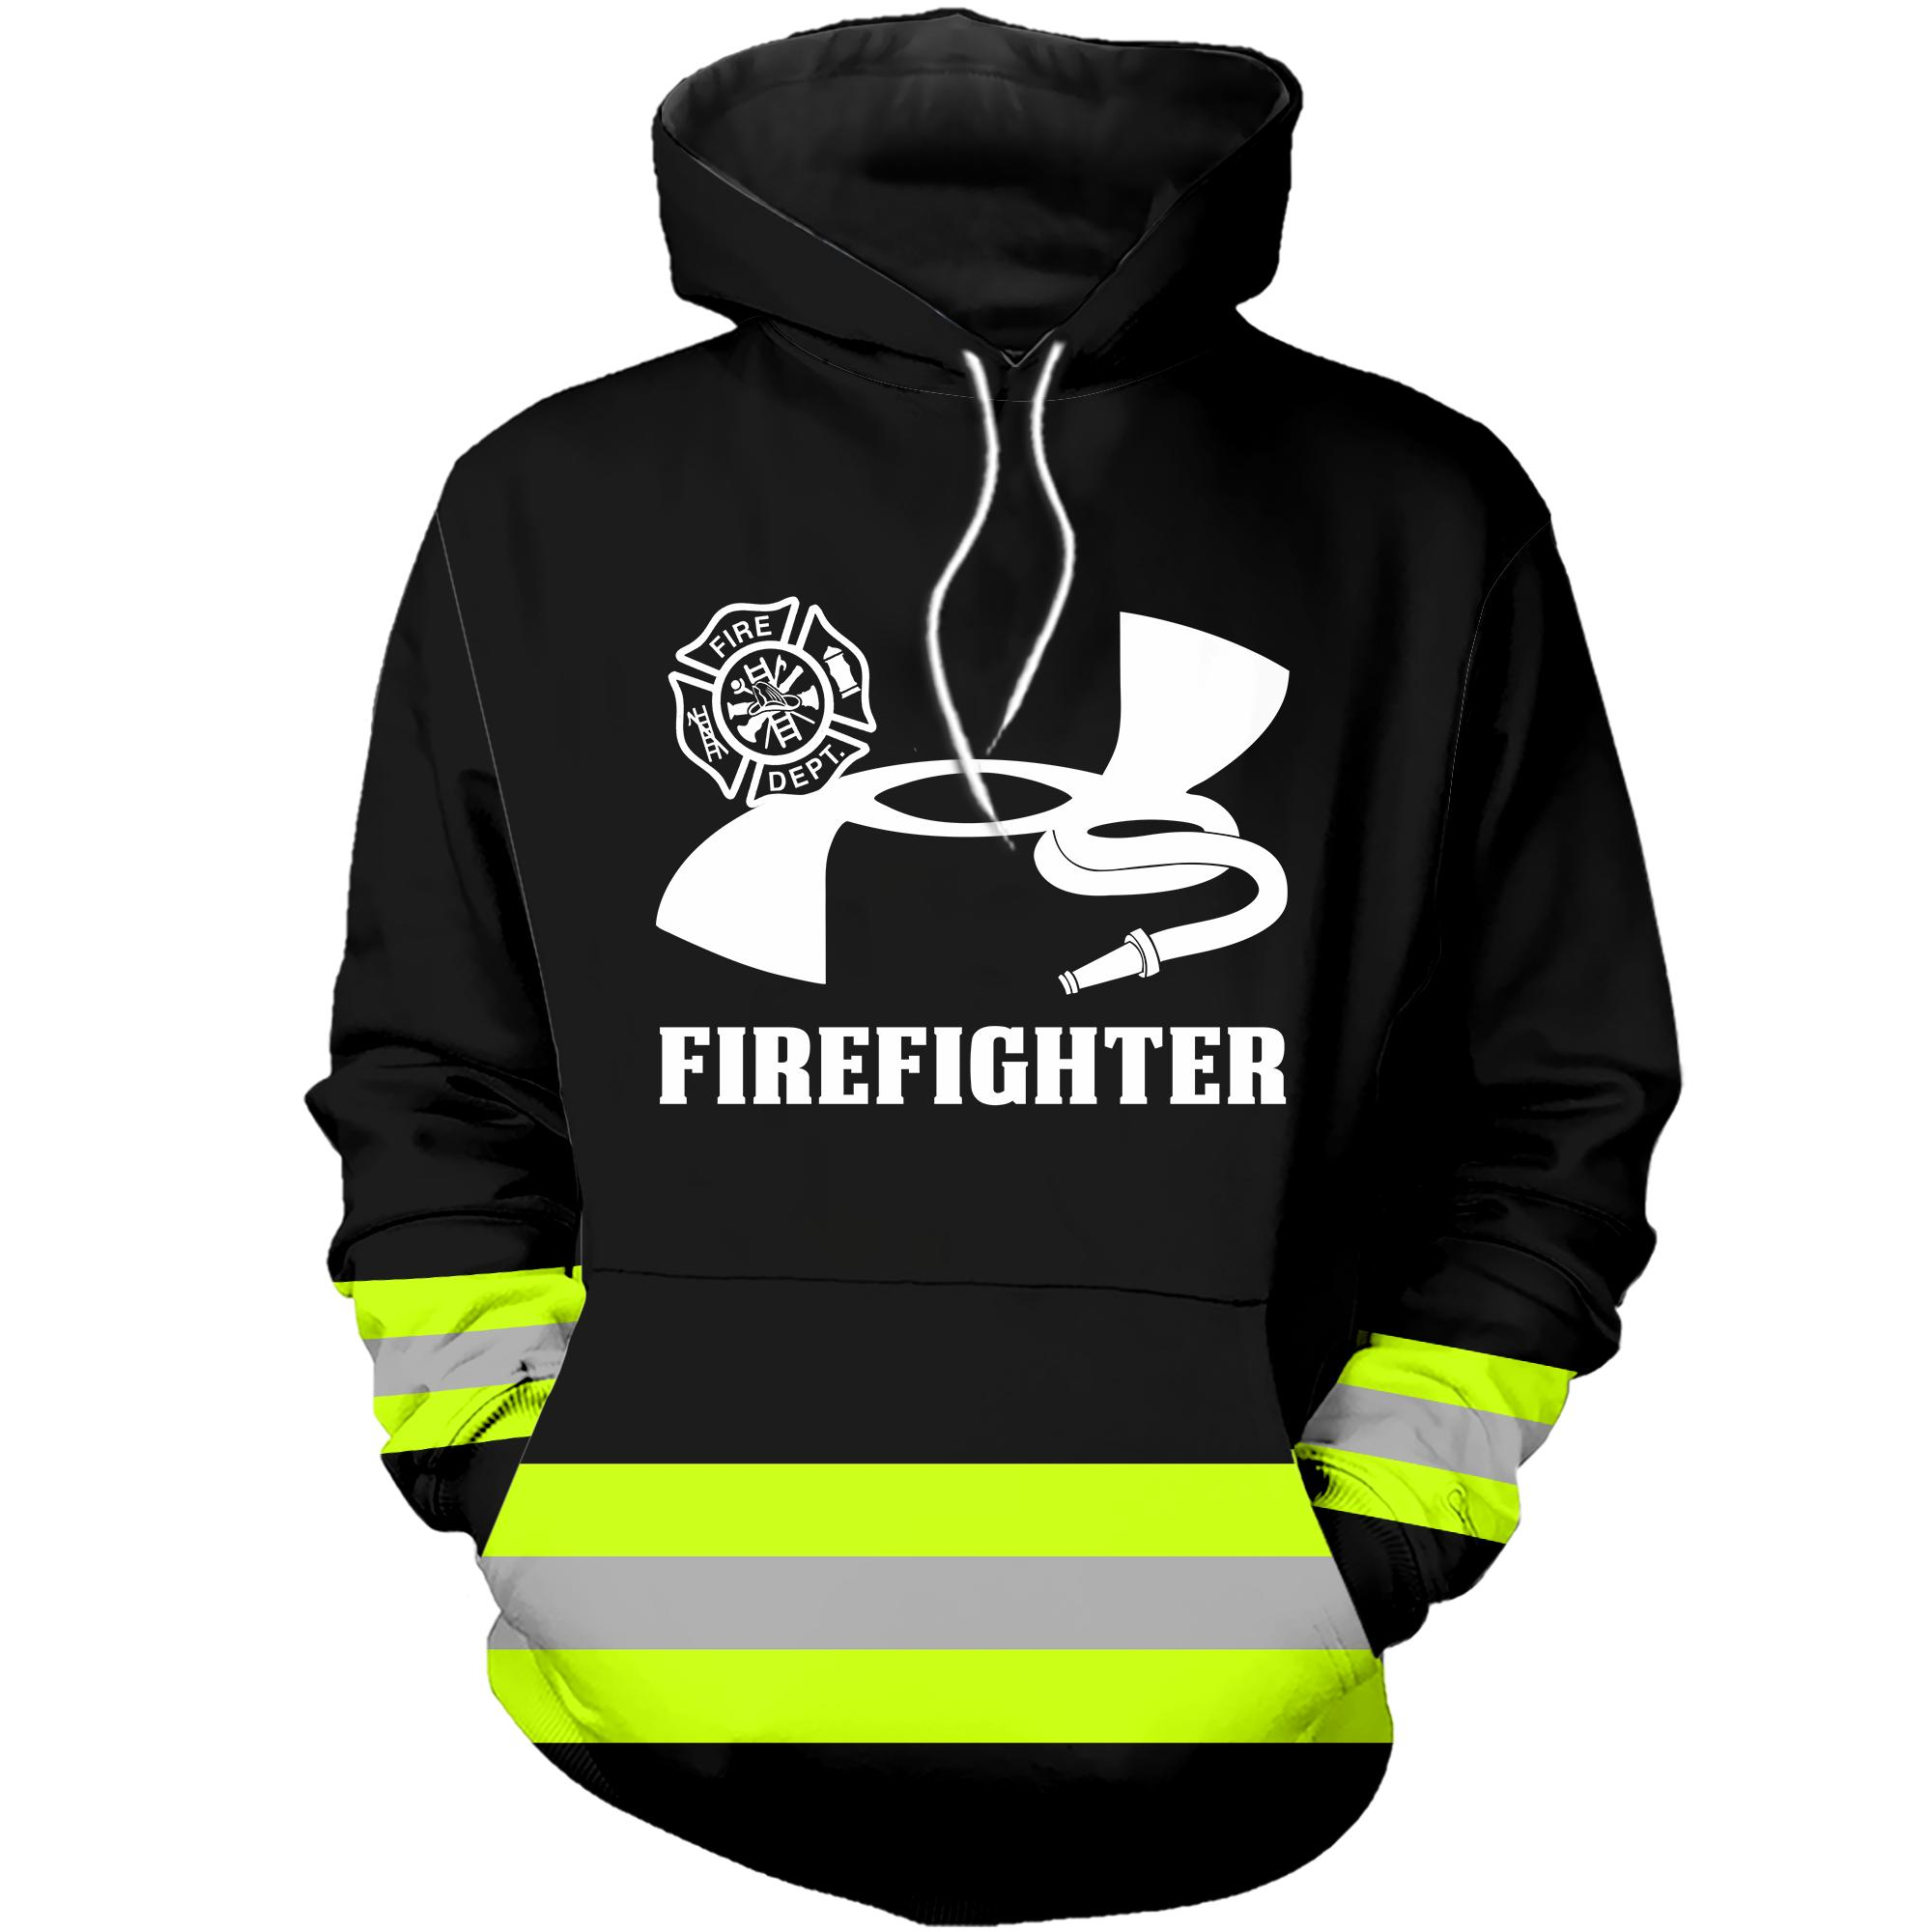 Under Armour Firefighter 3D hoodie